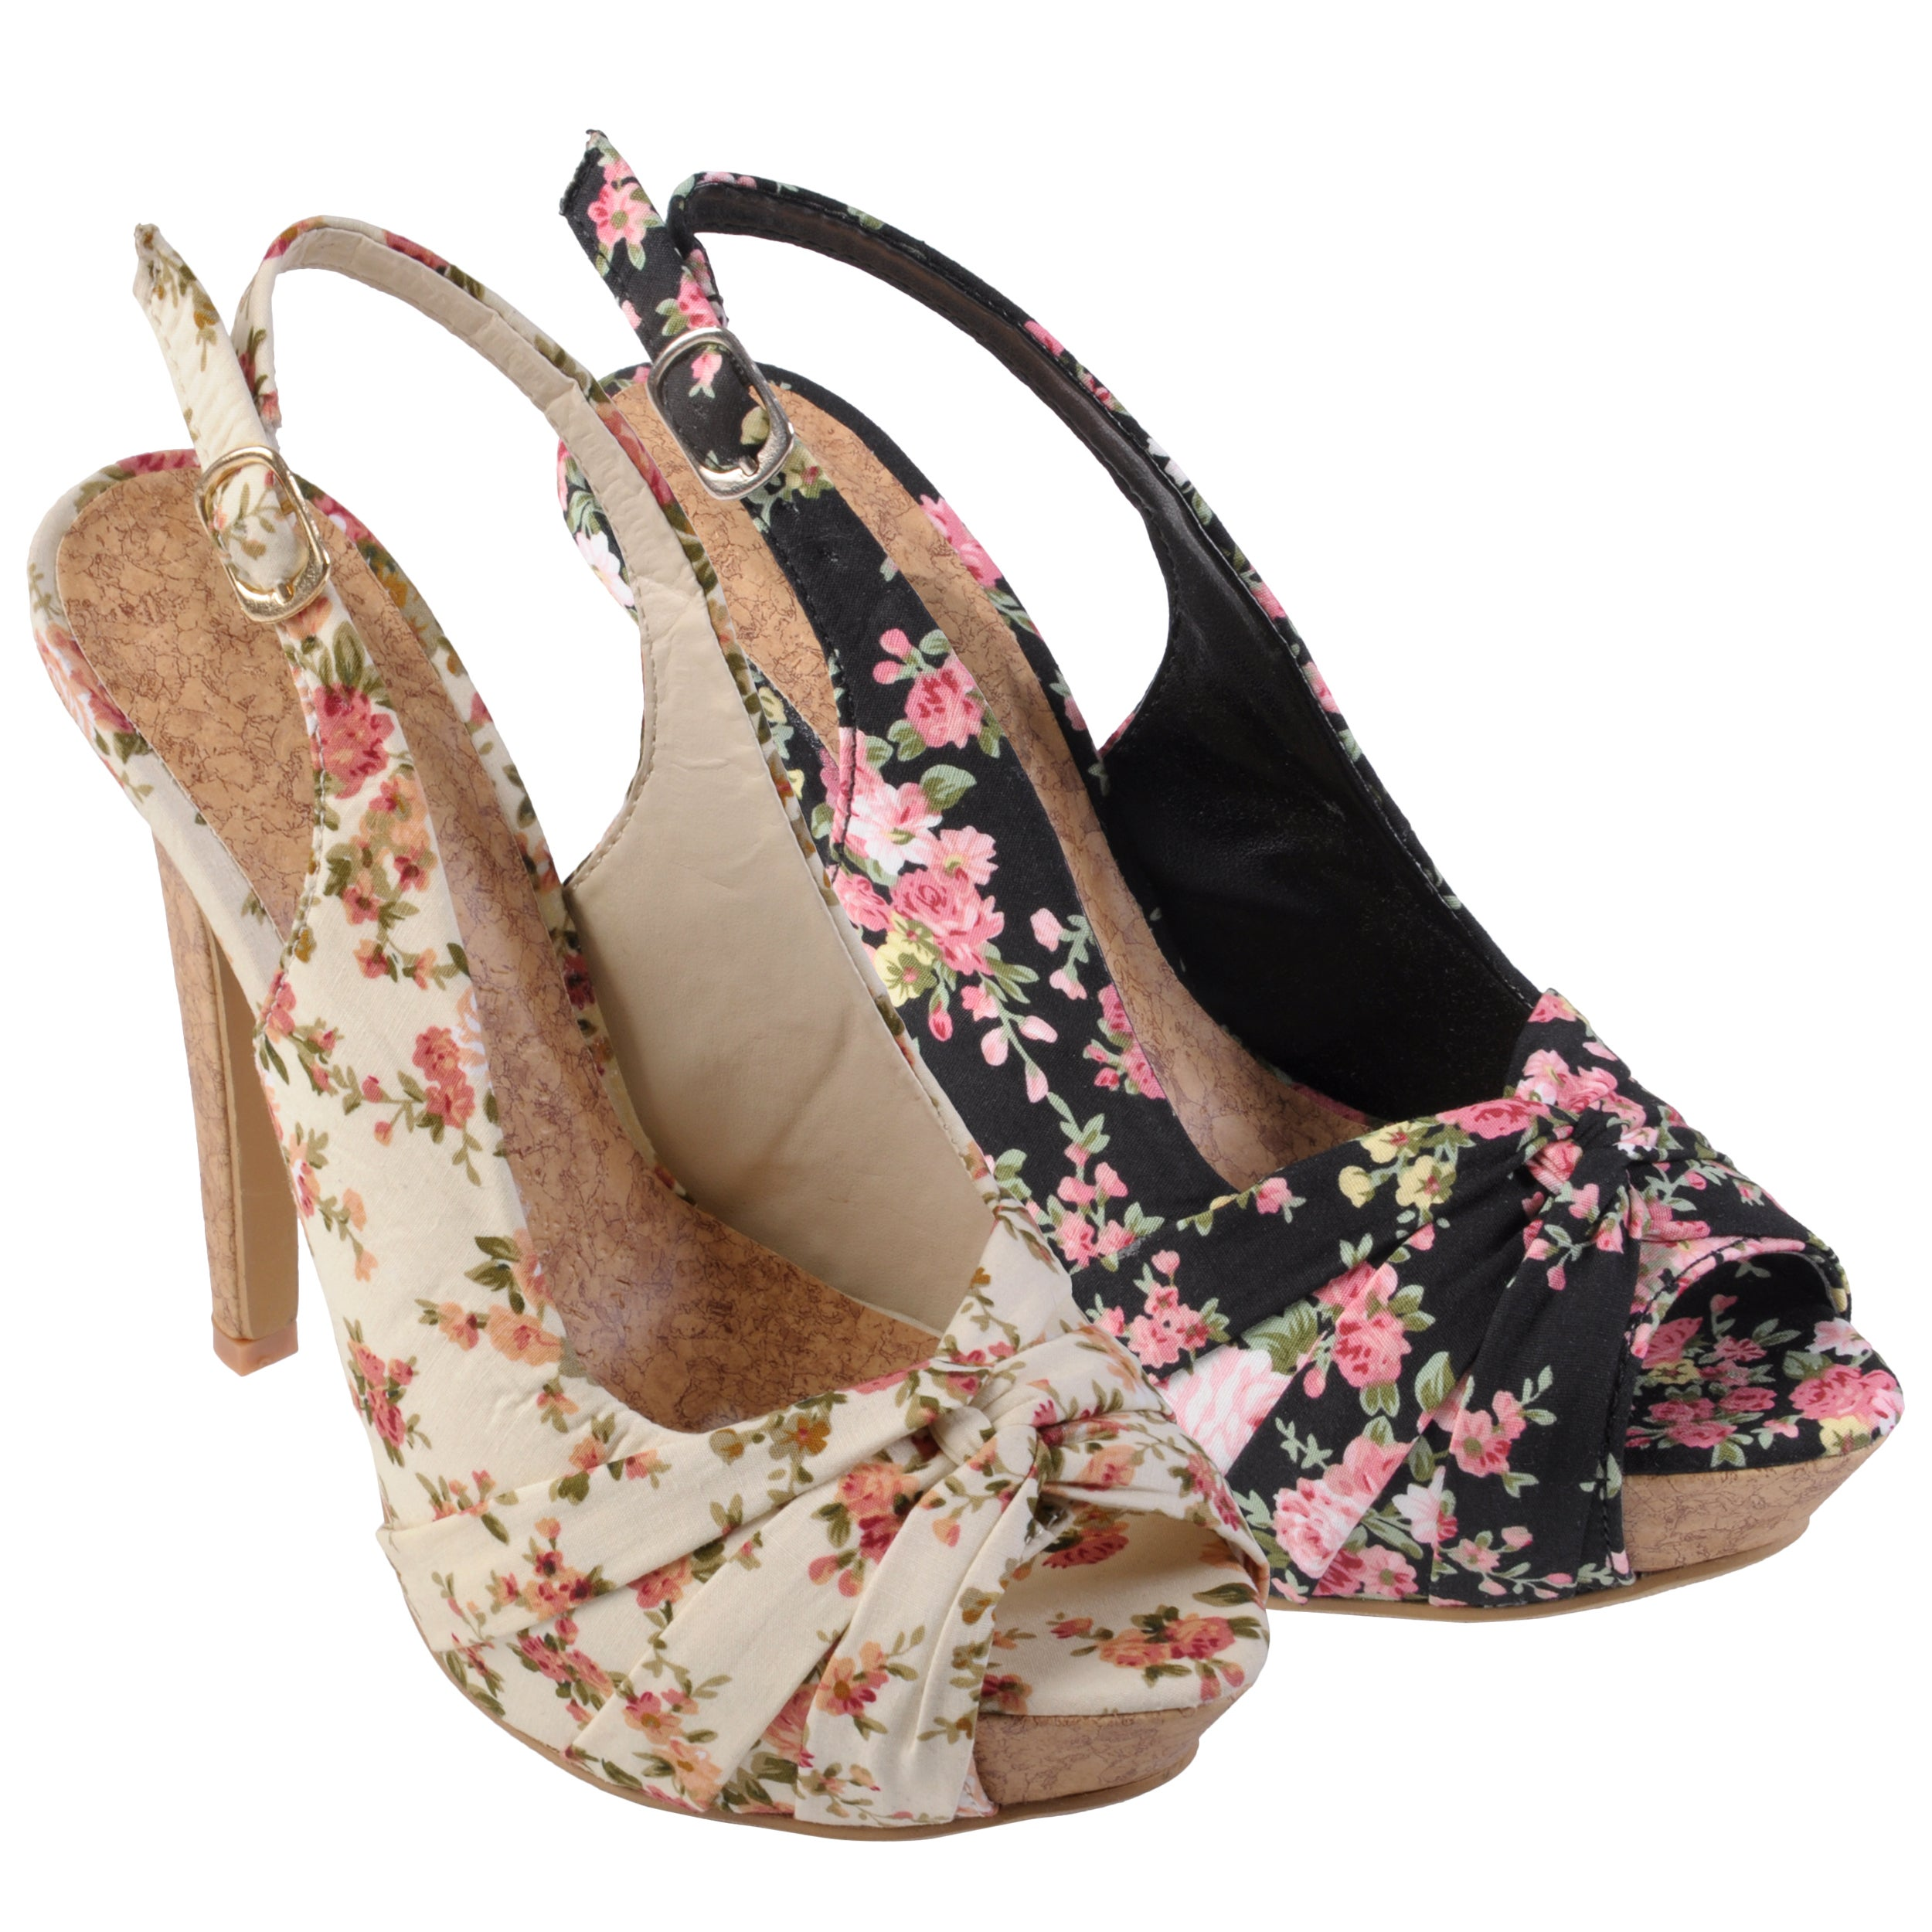 Journee Collection Women's 'Blythe-2' Floral Peep Toe Slingback Pumps